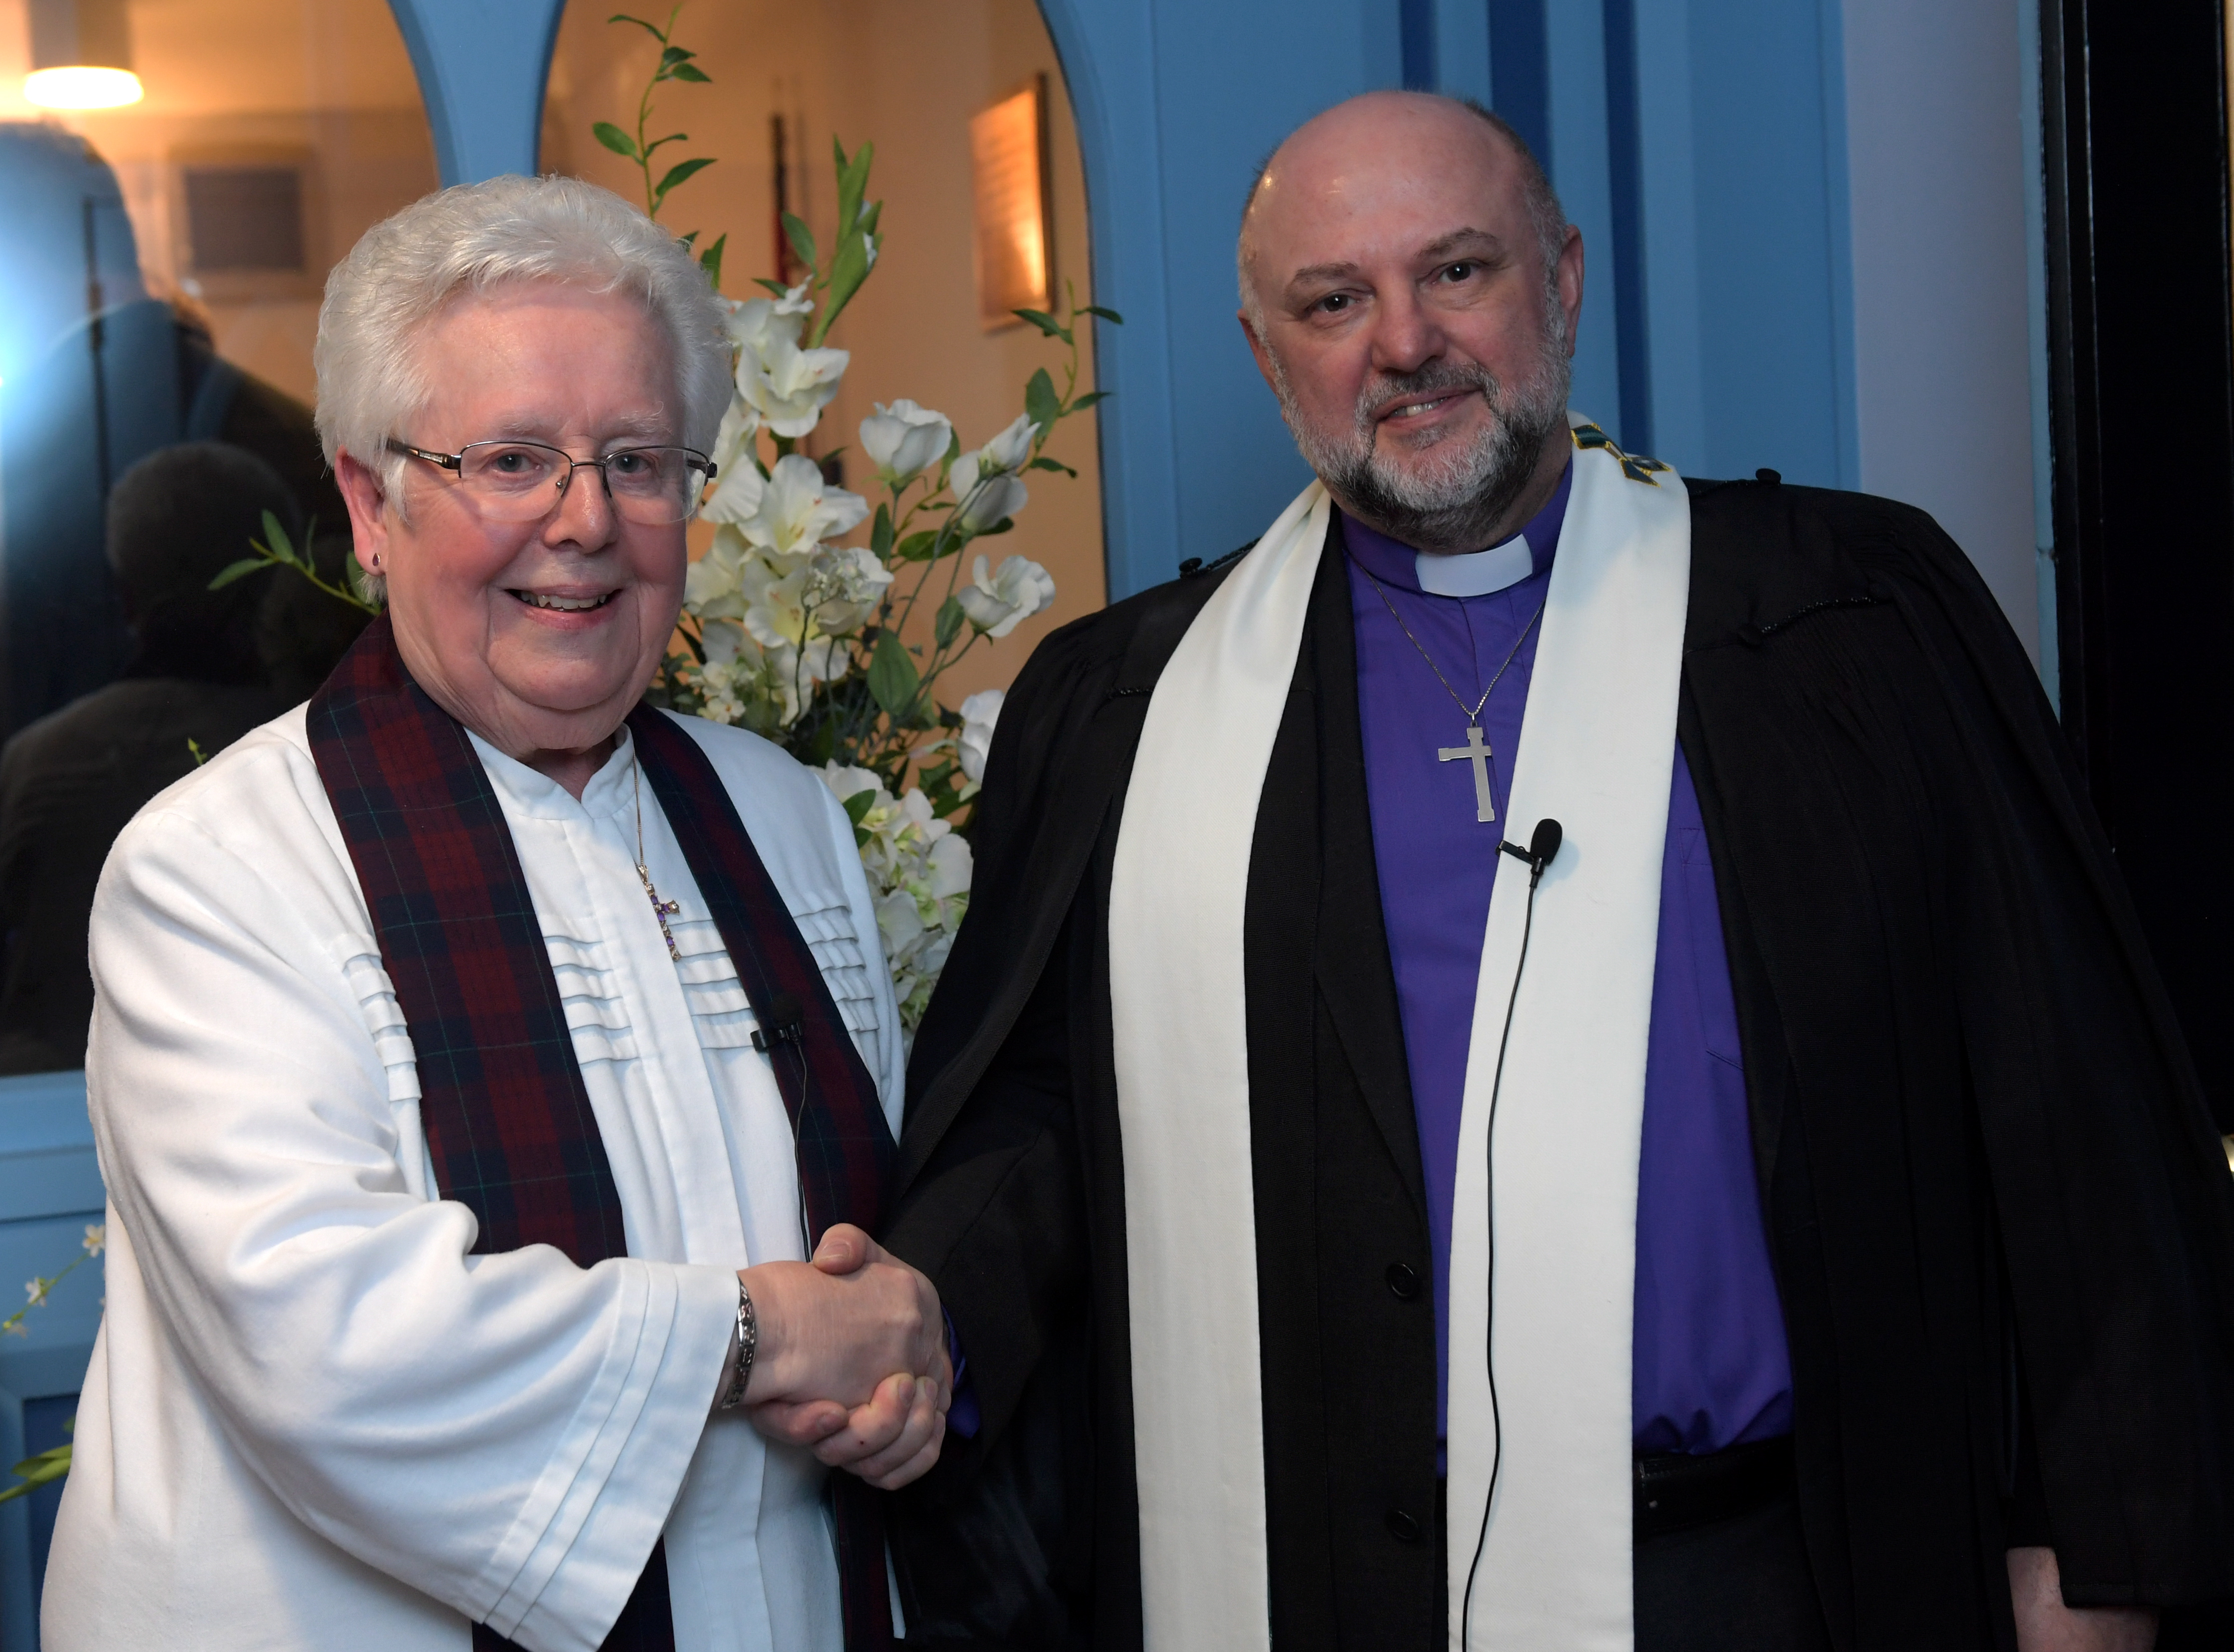 Reverend Sheila Craggs, who has been interim minister at St Andrew's Church, Inverurie, is passing over control to the new permanent minister Reverend Carl Irvine.  Picture by Kath Flannery.